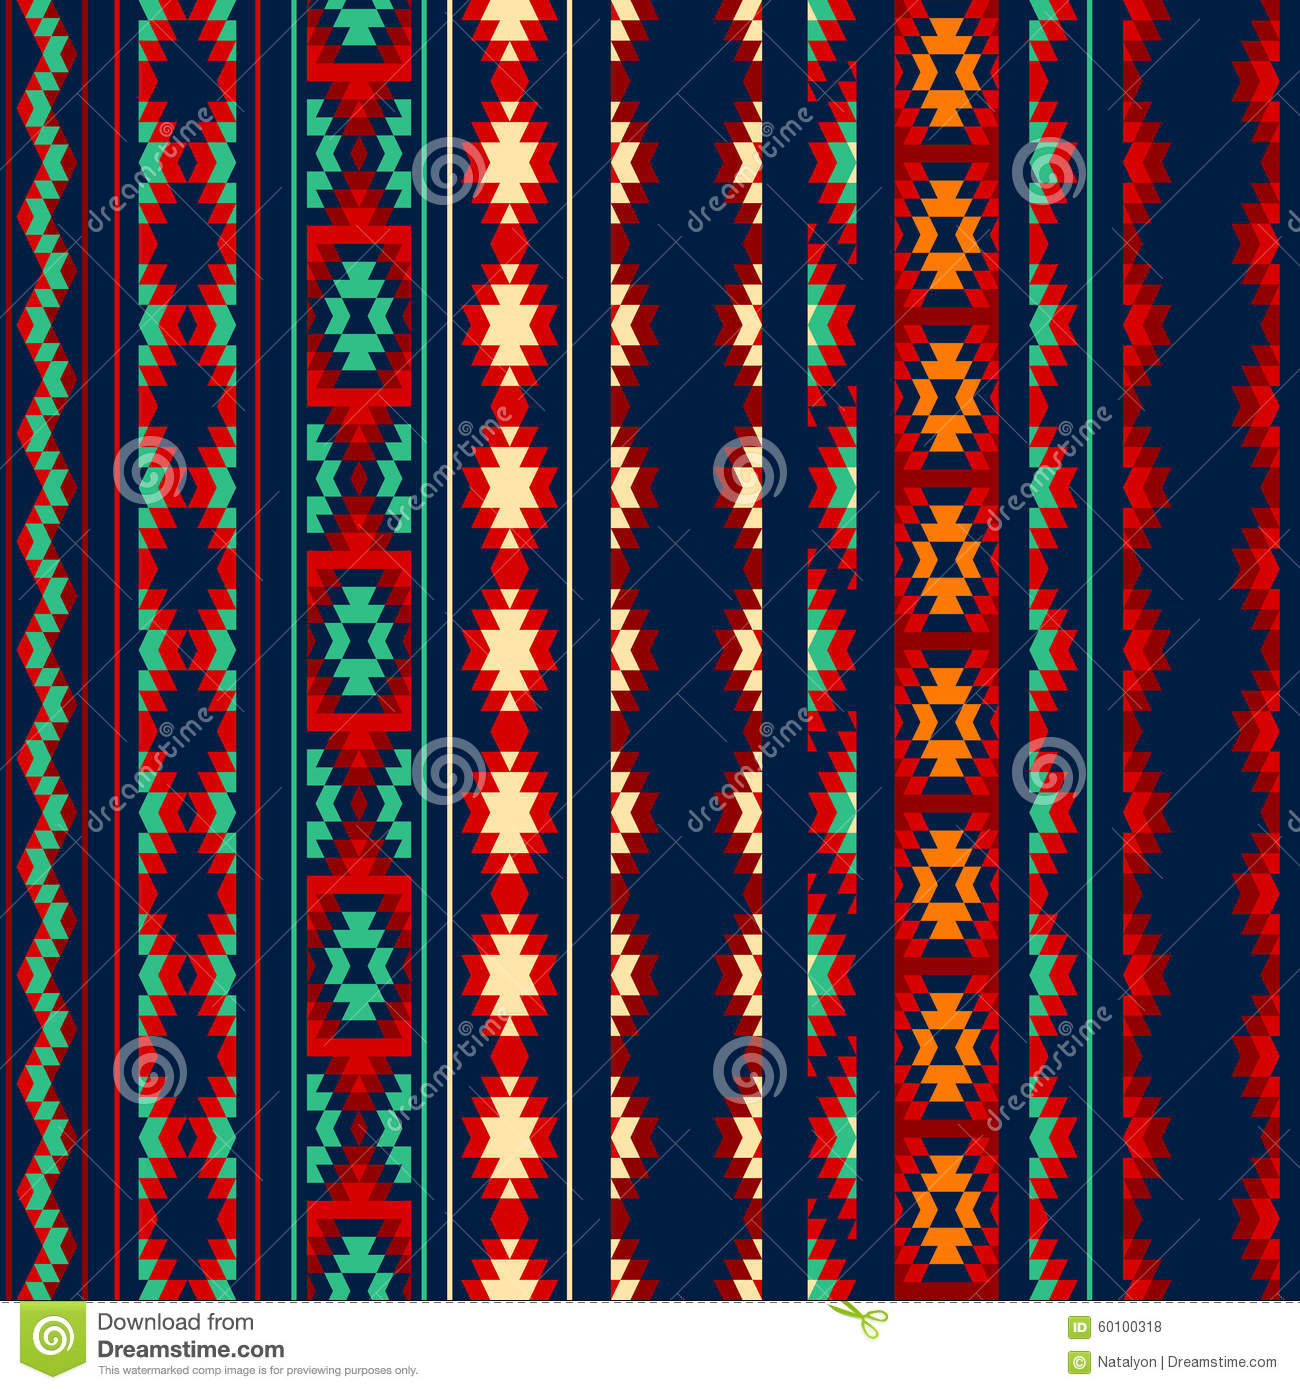 Download Colorful Red Orange Blue Aztec Striped Ornaments Geometric Ethnic Seamless Pattern Stock Vector - Illustration of geometric, aztec: 60100318